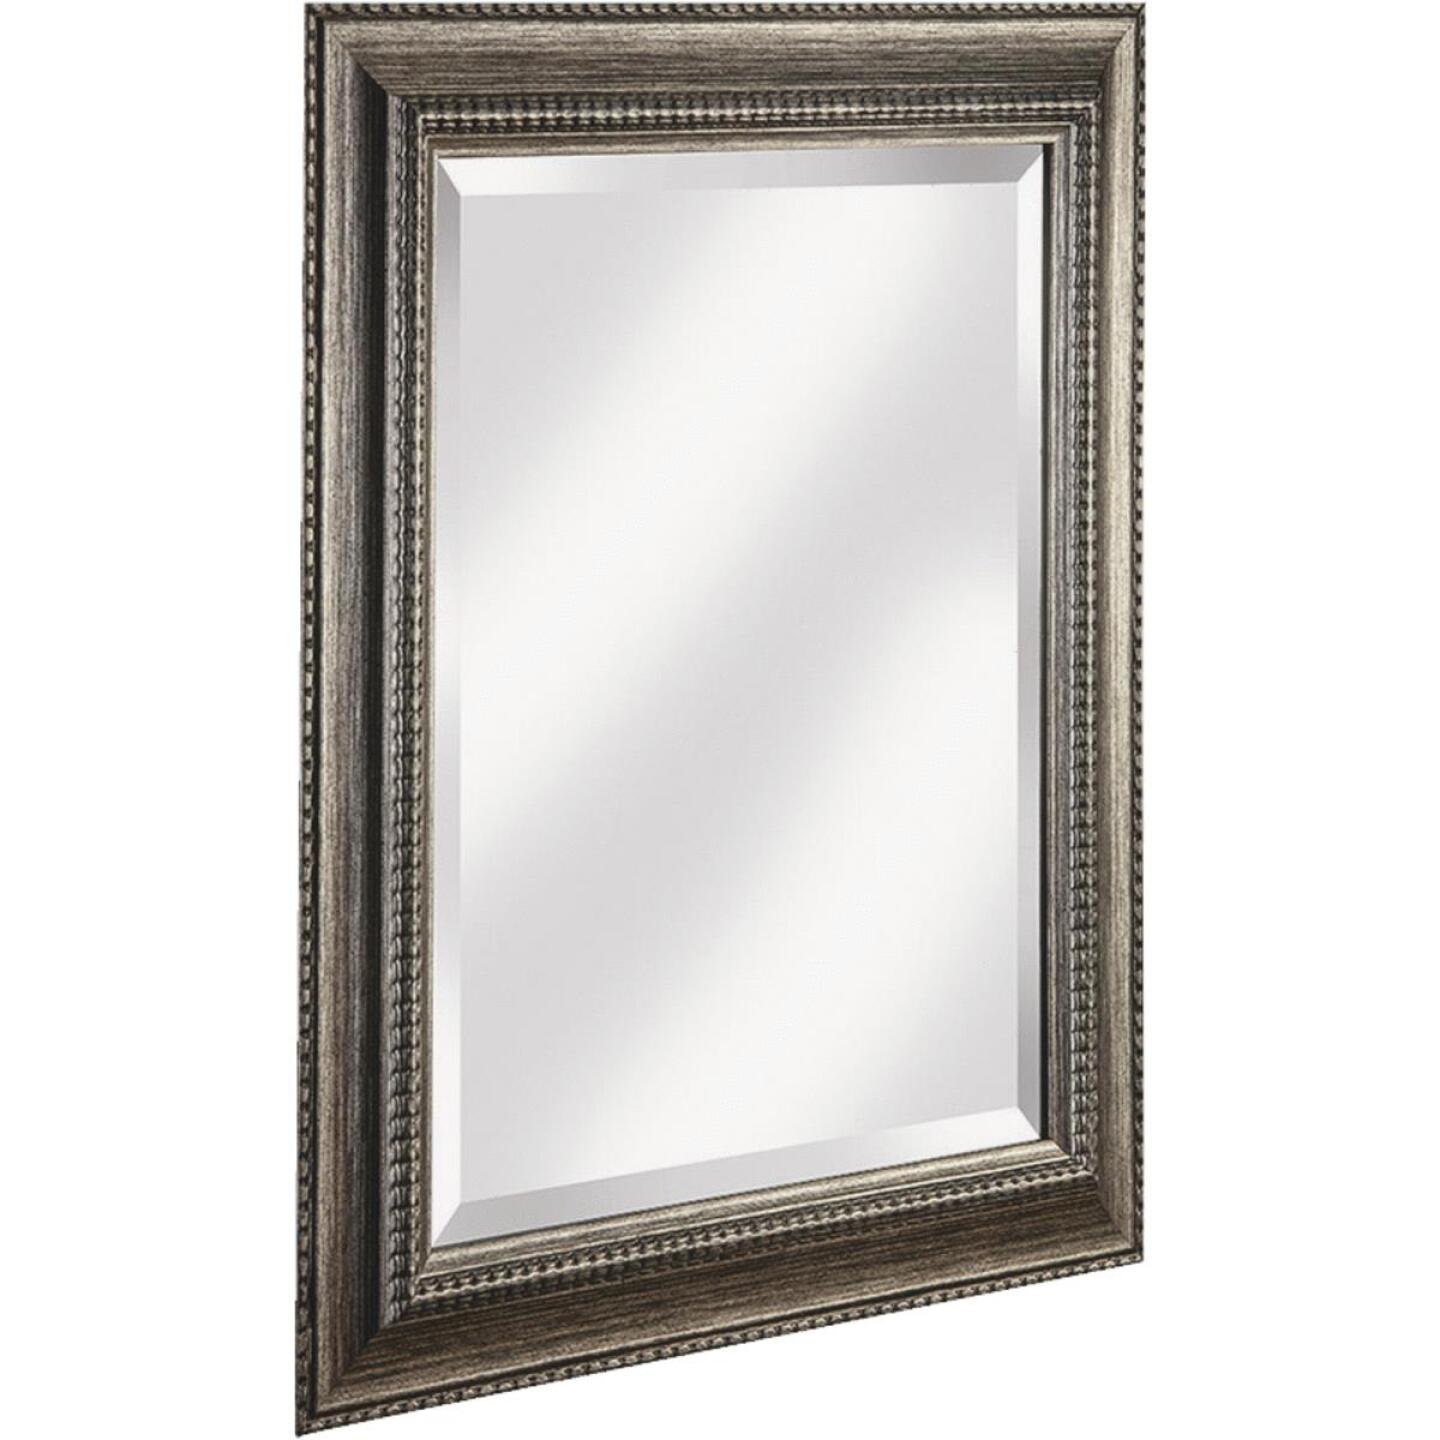 Erias Home Designs Traditional 21.5 In. W x 25.5 H Antique Pewter Composite Framed Wall Mirror Image 1